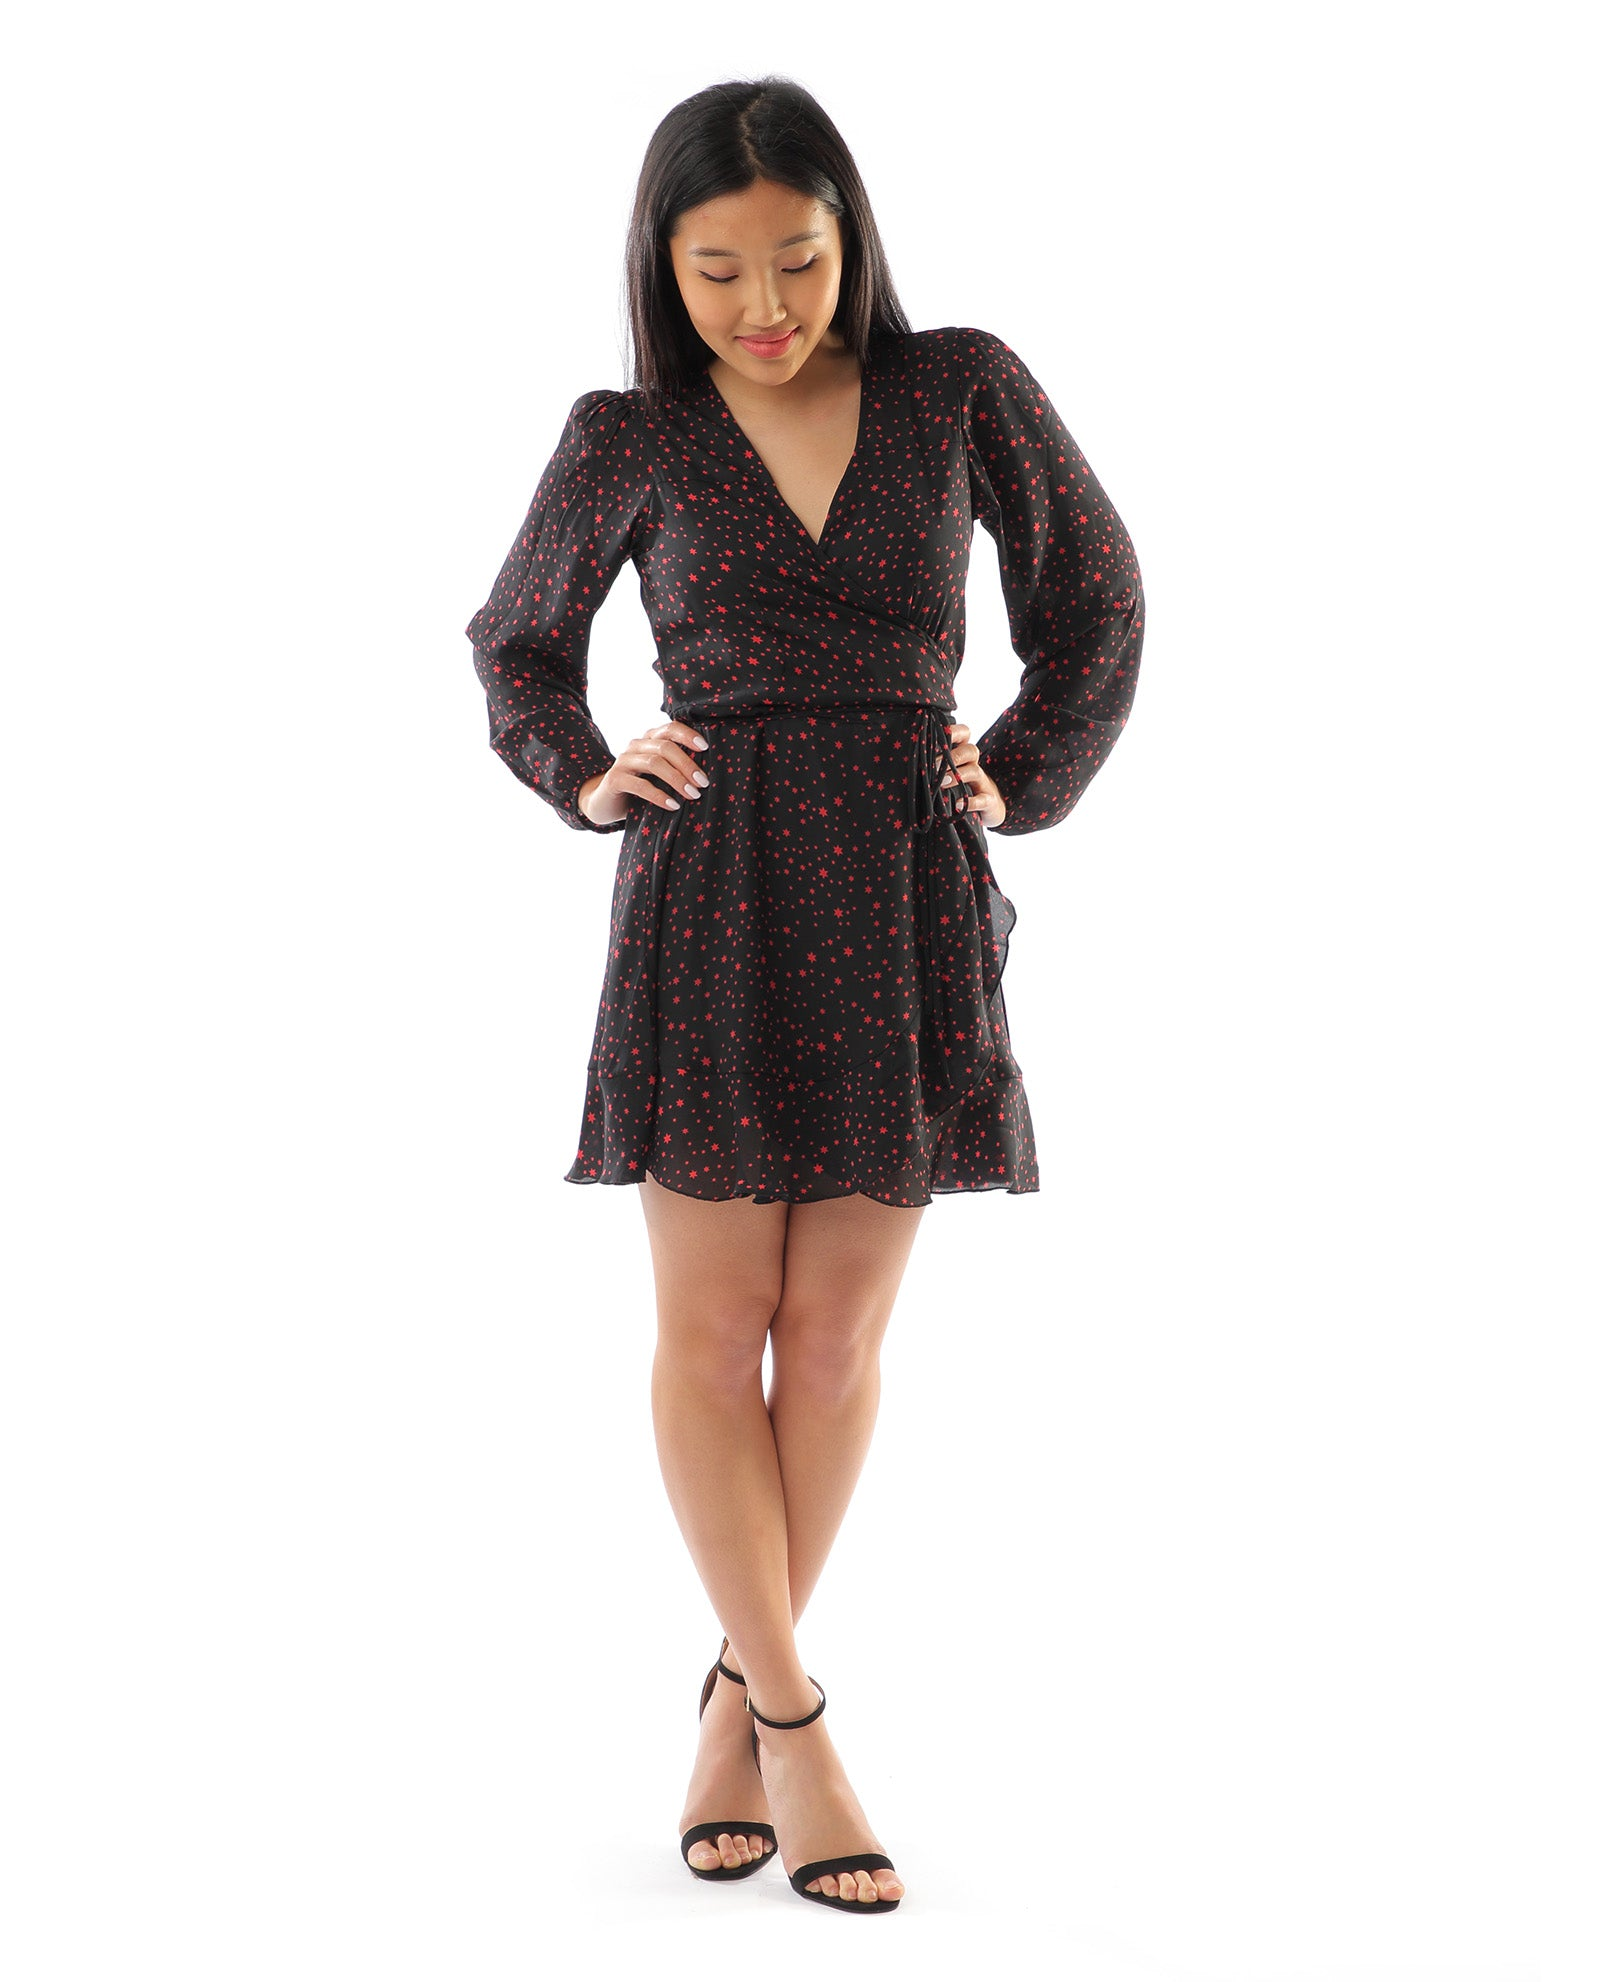 Rent dress | Dancing Leopard black star wrap dress | Hirestreetuk.com